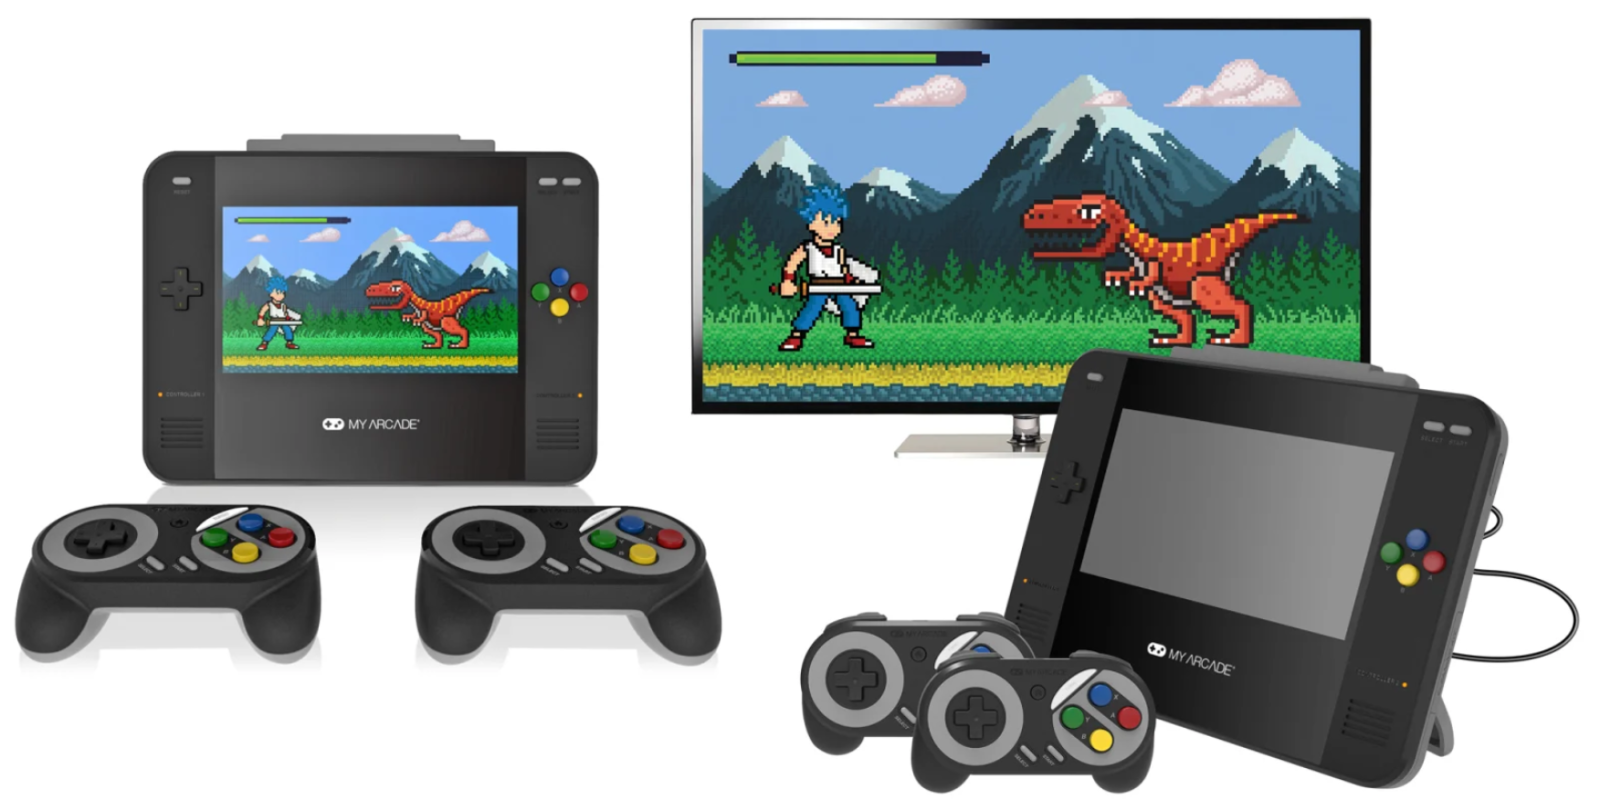 New Super Retro Champ handheld console plays both SNES and SEGA Genesis games